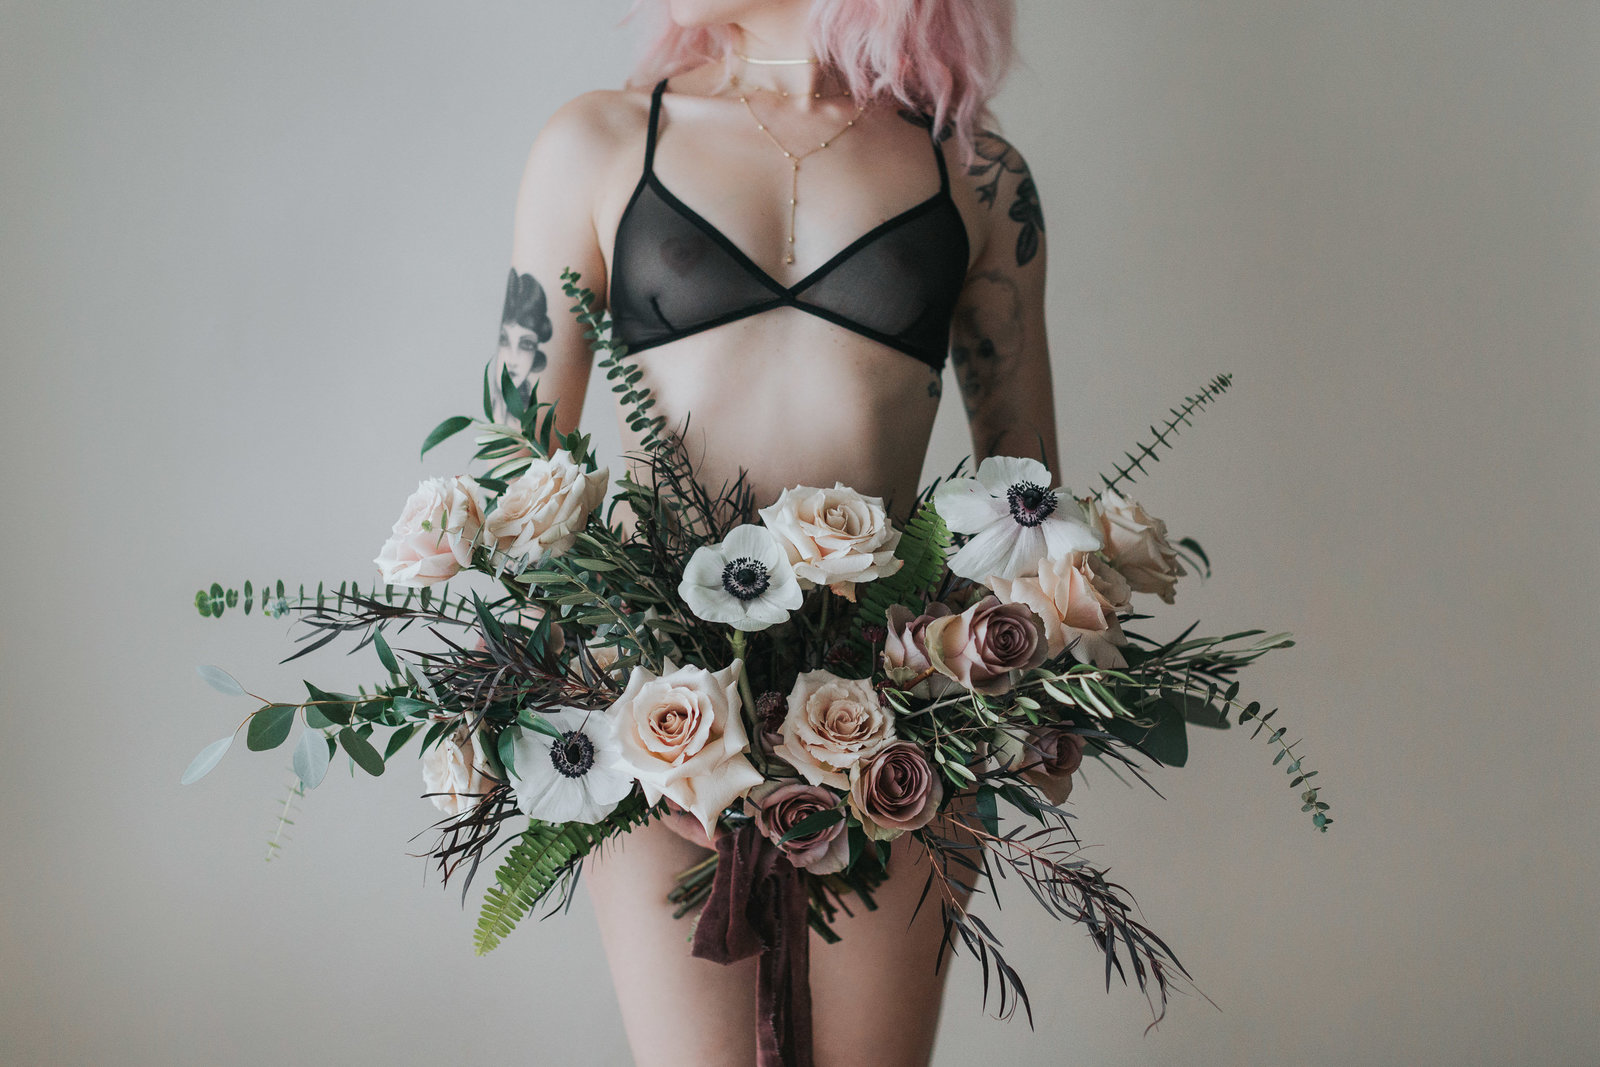 Girl in lingerie holding bouquet of flowers